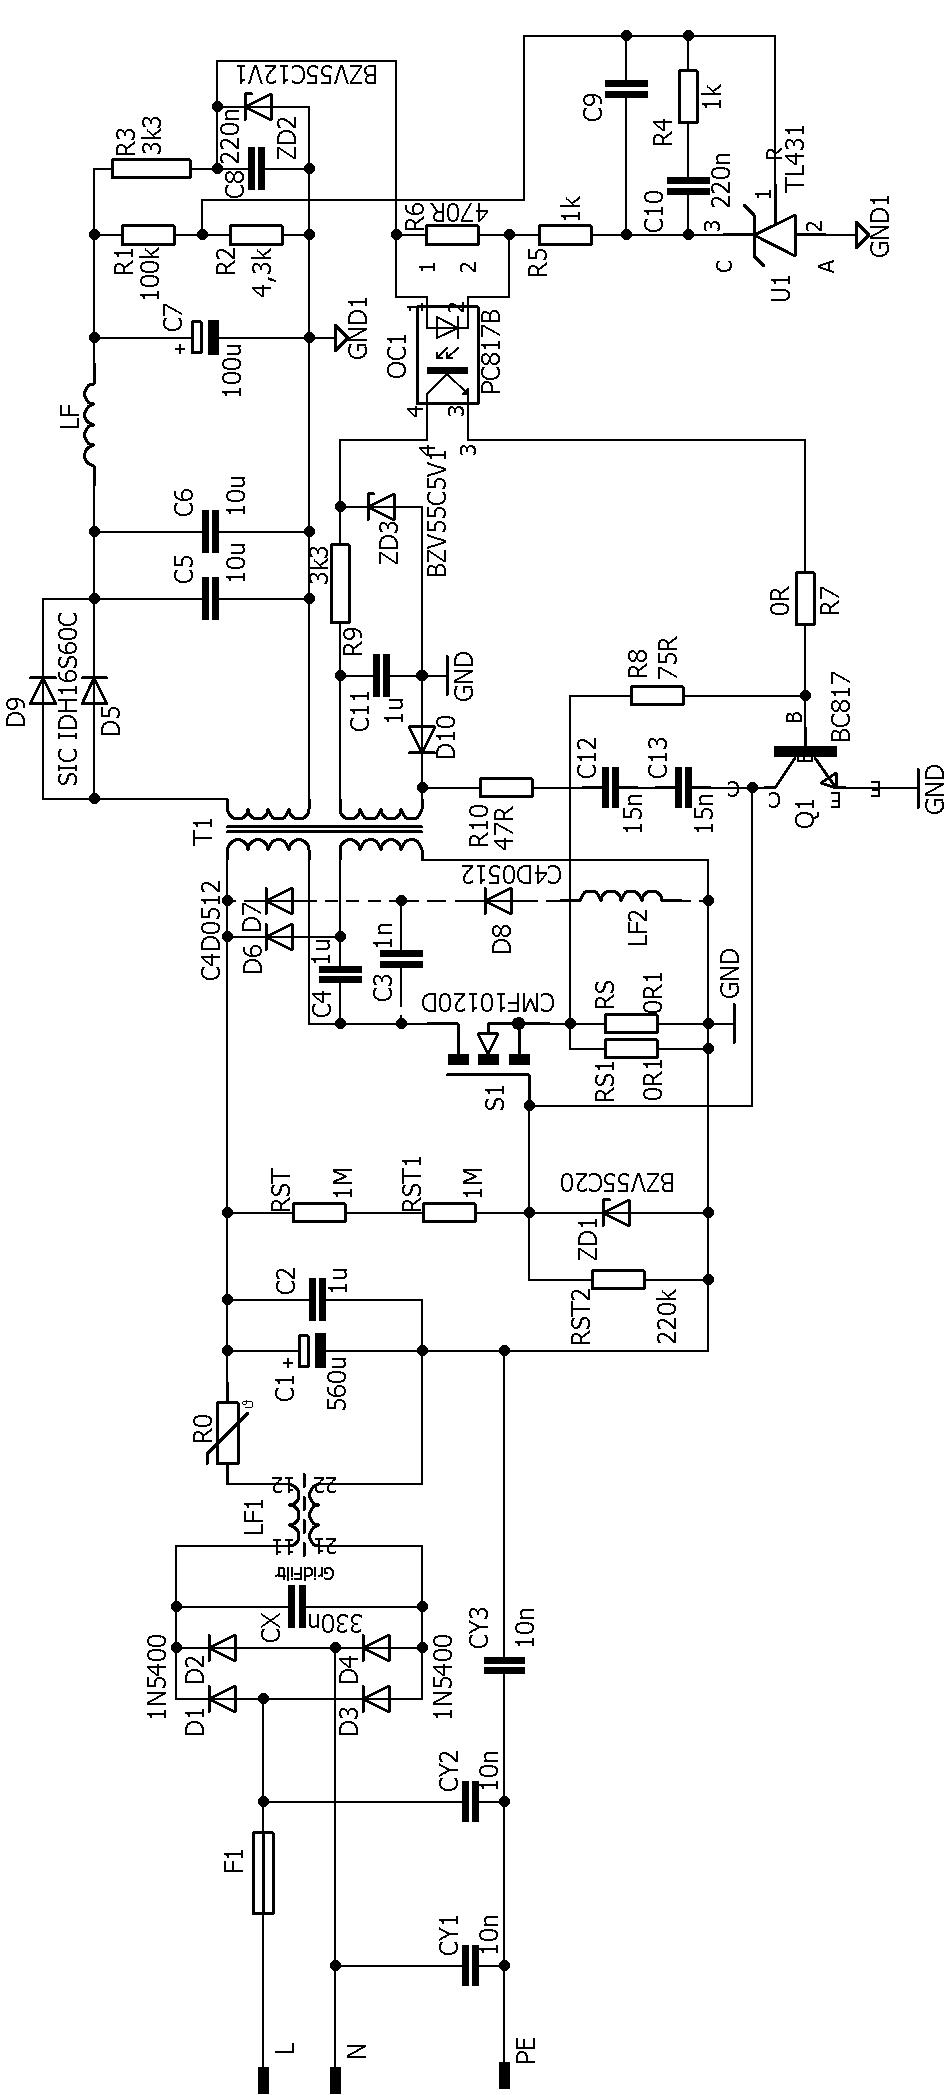 medium resolution of self oscillating smps circuit flyback 600w 60v 120khz 600w smps circuit schematic self oscillating smps 120x120